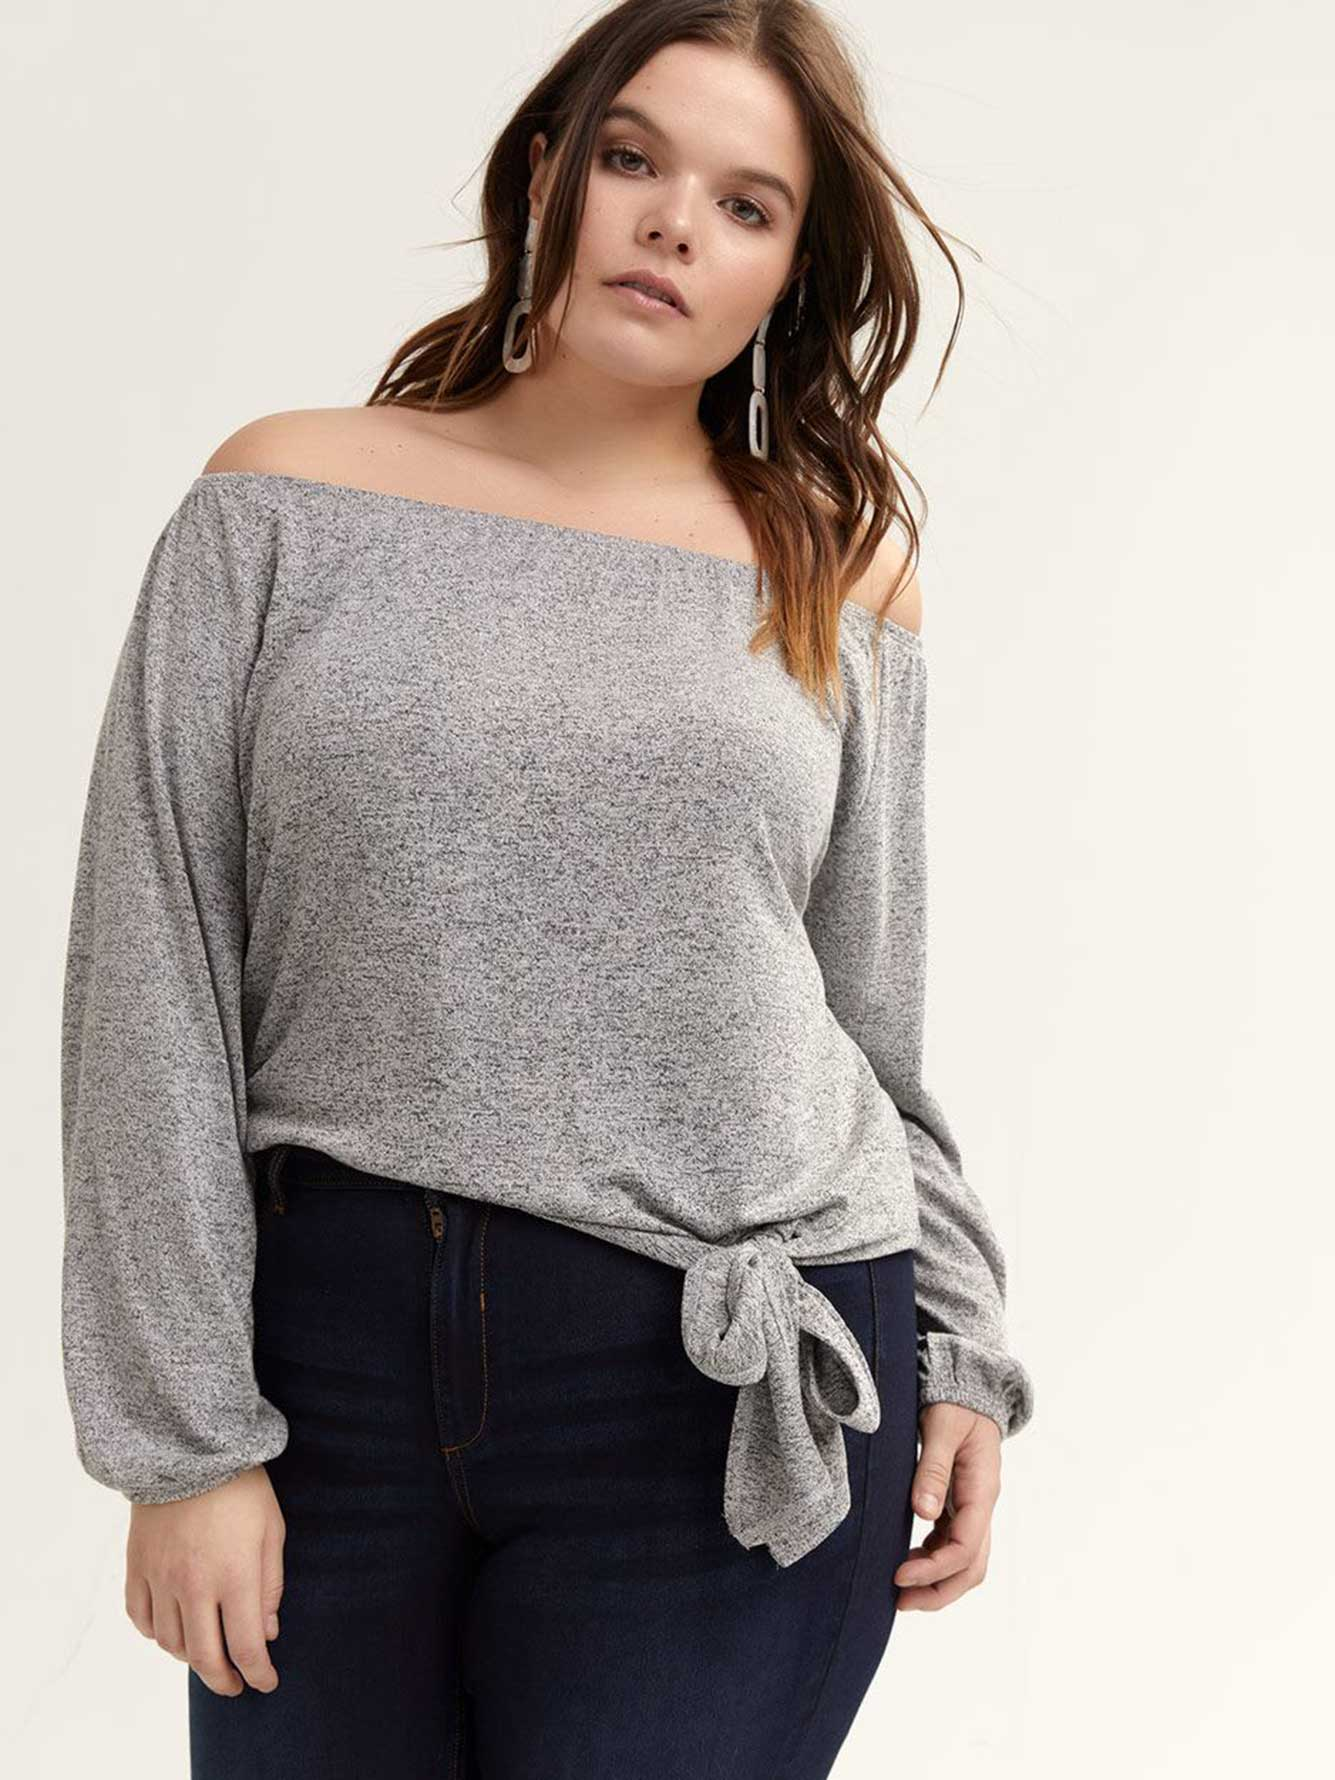 Off-the-Shoulder Long Sleeve Top - L&L